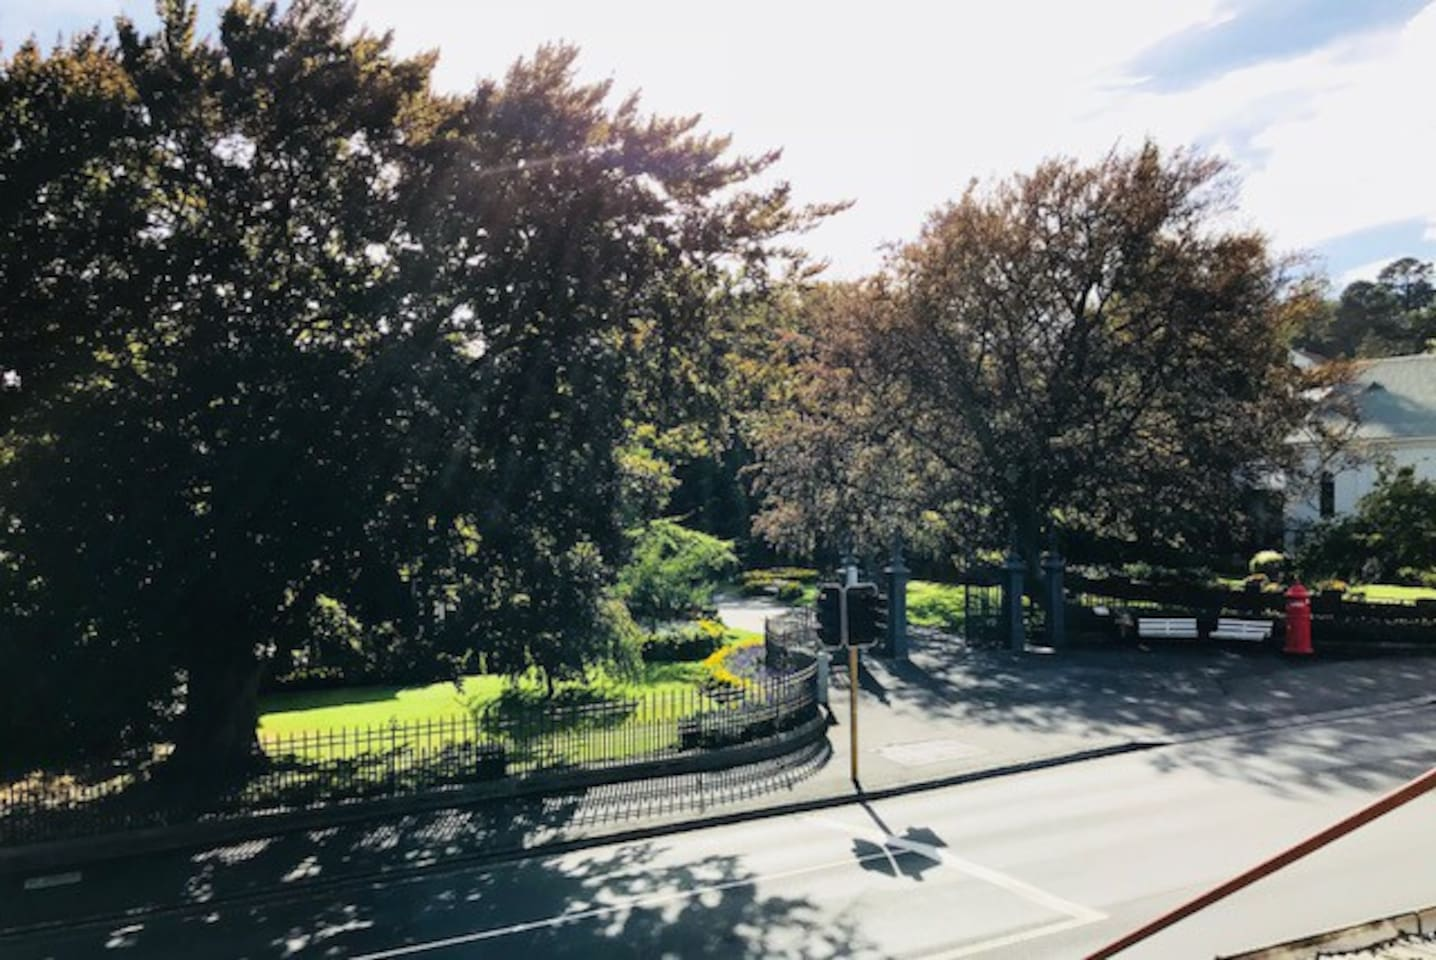 View of the entrance to Launceston's beautiful City Park from the Apartment